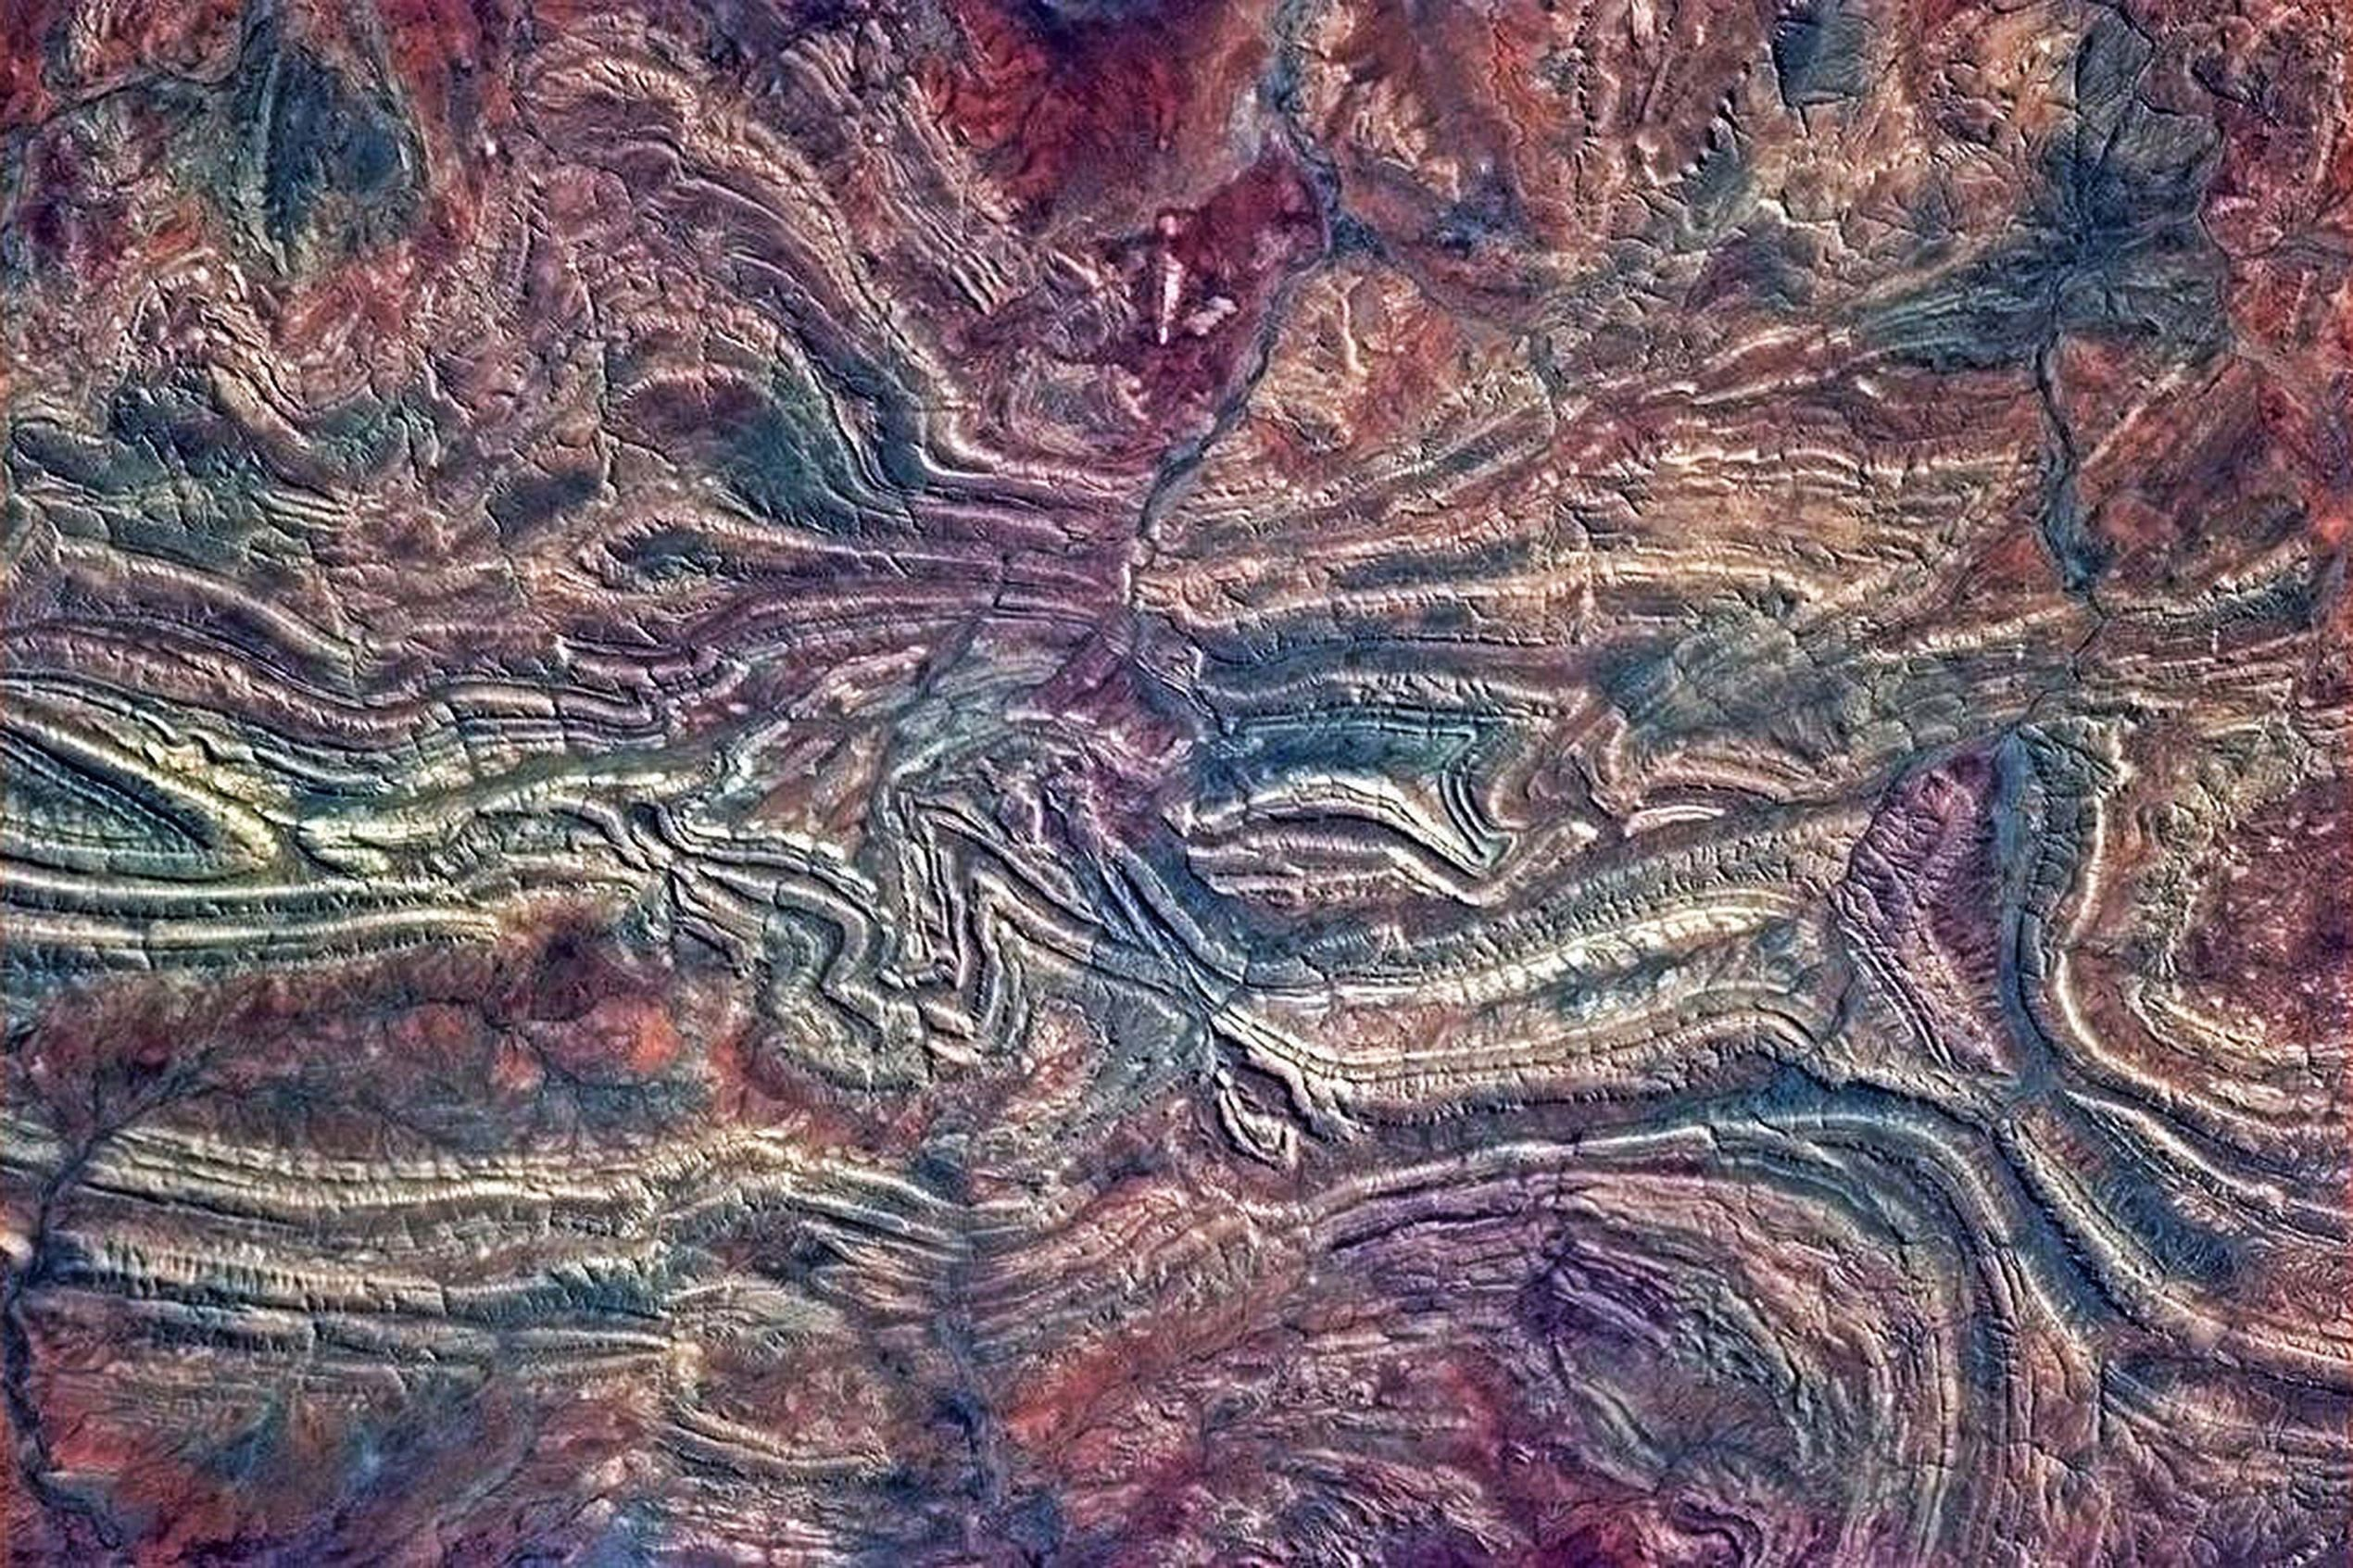 Australian Outback from International Space Station